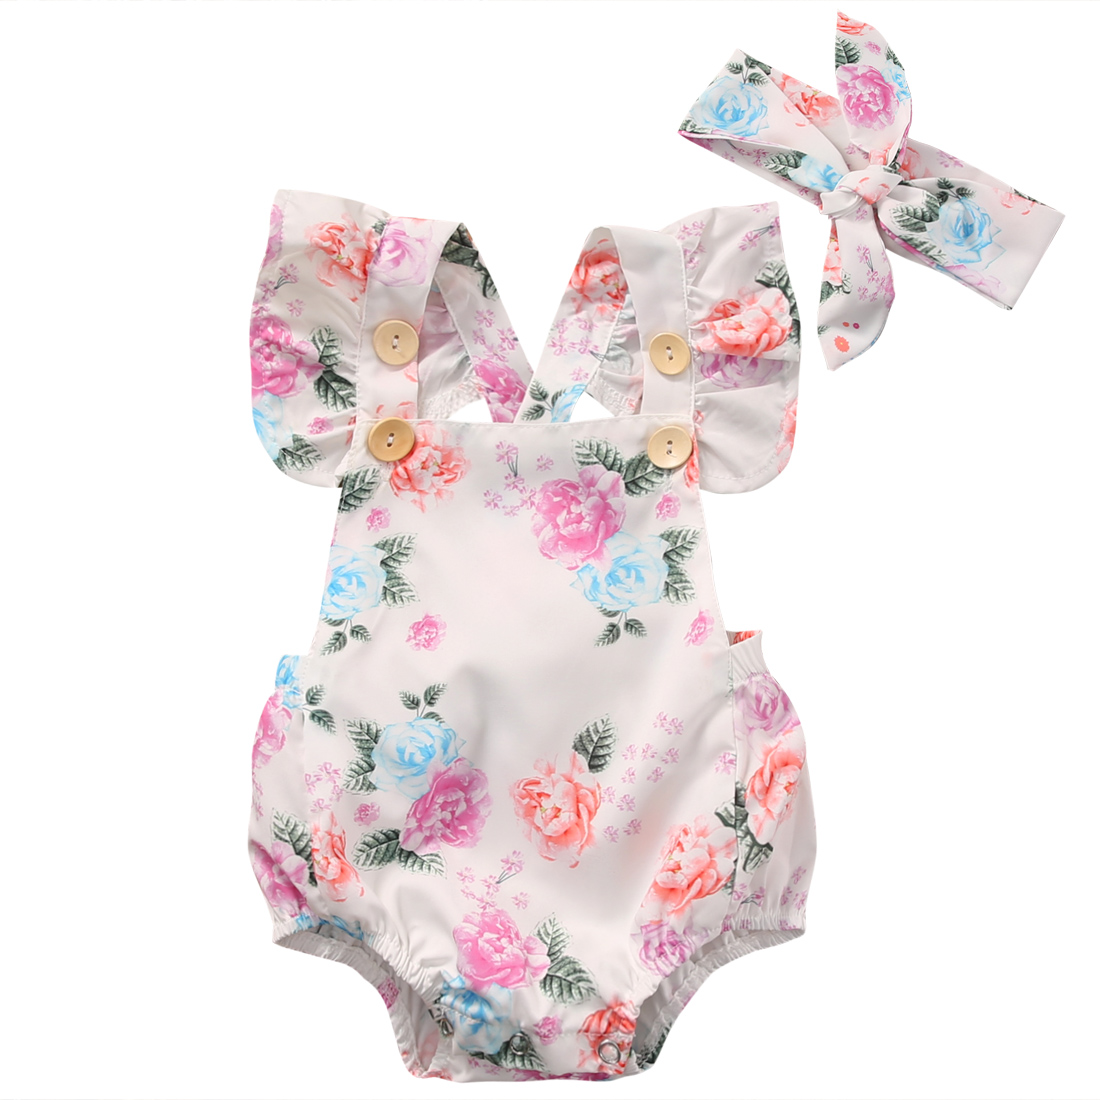 2pcs/Set Summer Infant Baby Girl Floral Fly Sleeve Romper +Headband Summer Sunsuit Clothes Outfits Set